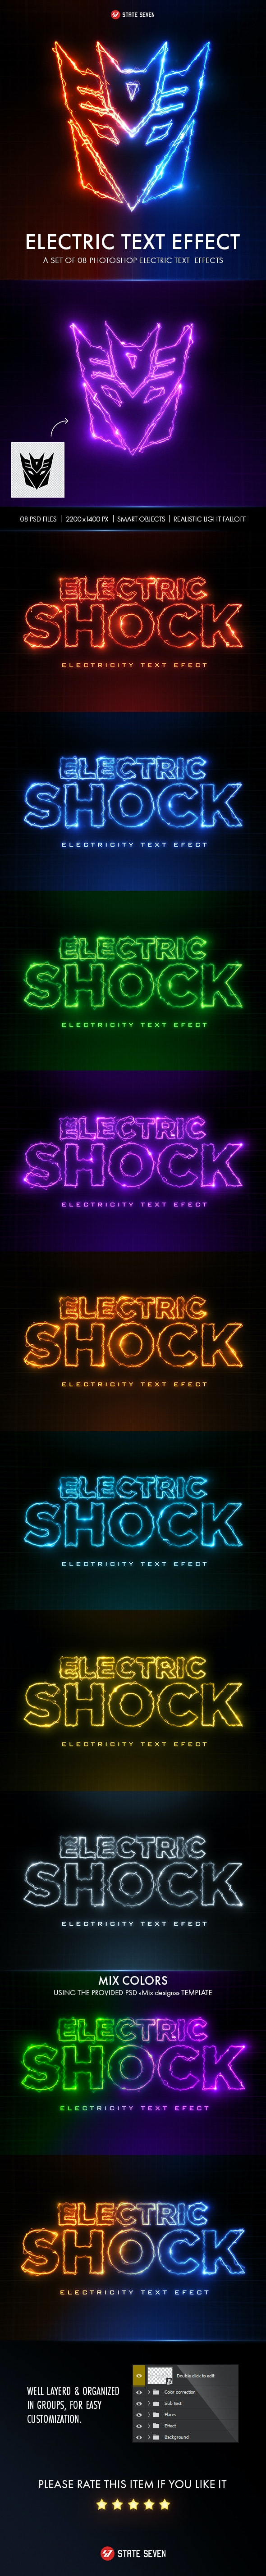 Electric Text Effect - Text Effects Styles